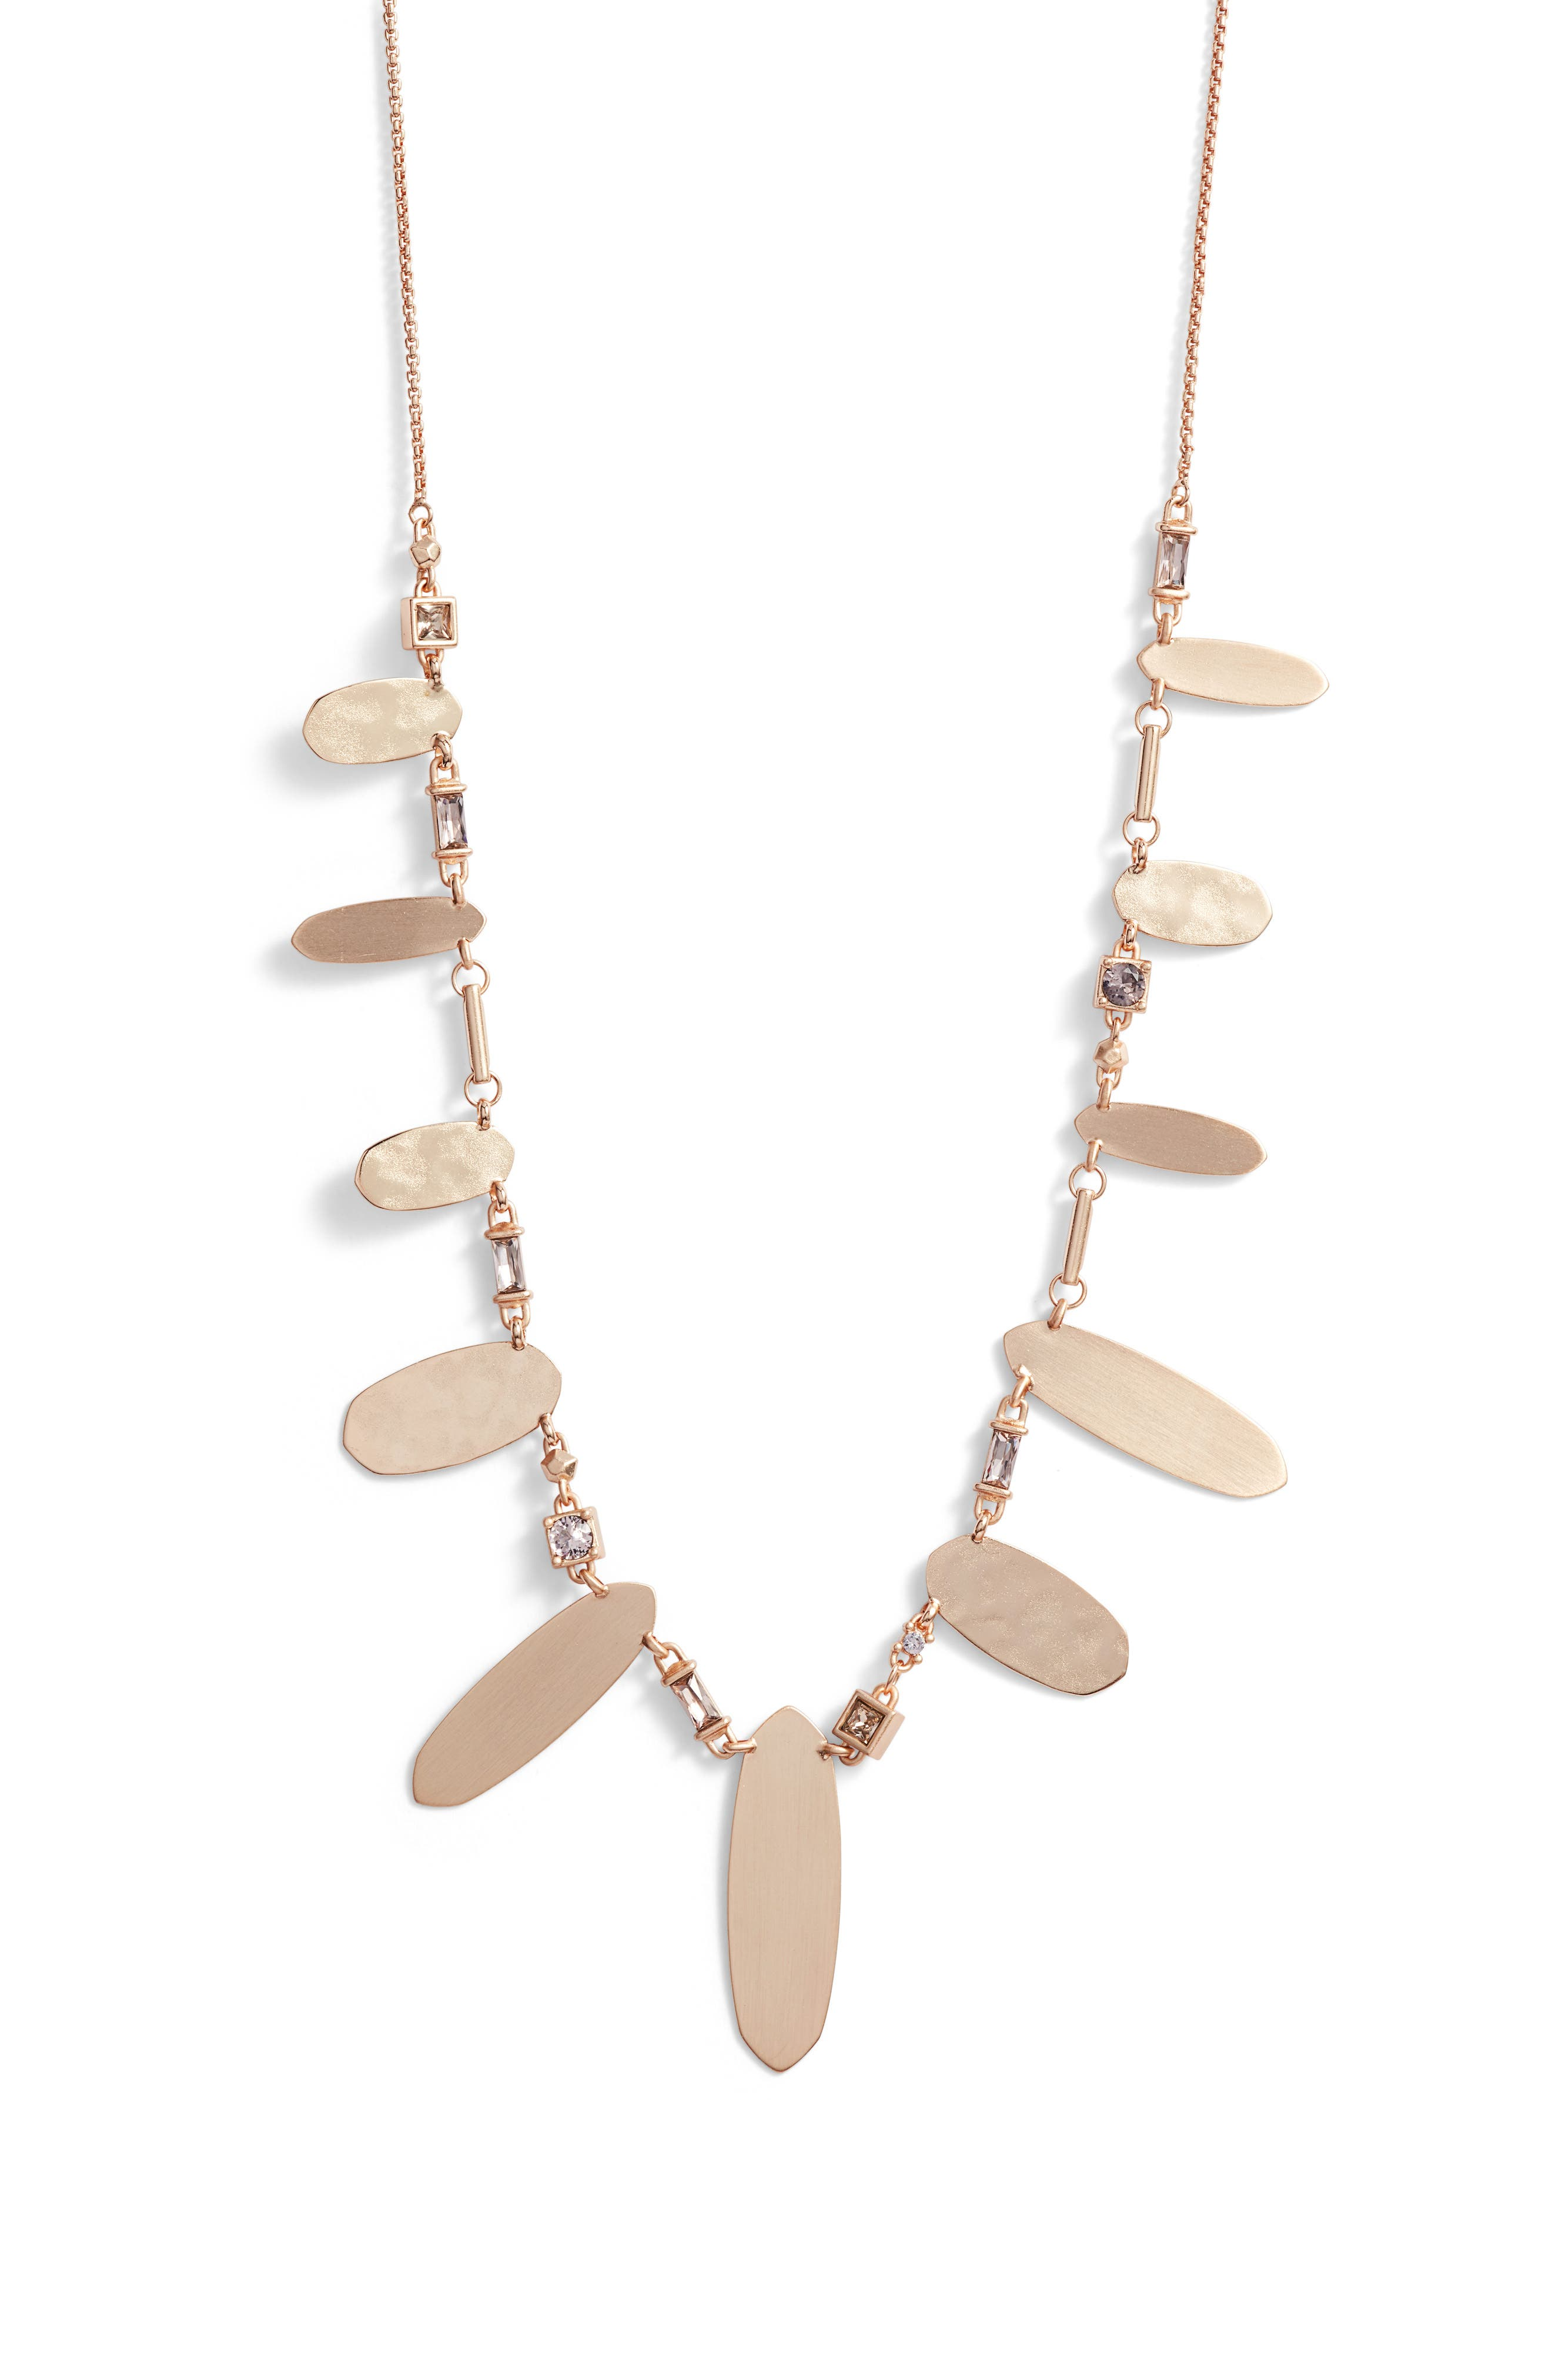 Airella Necklace,                             Main thumbnail 1, color,                             650